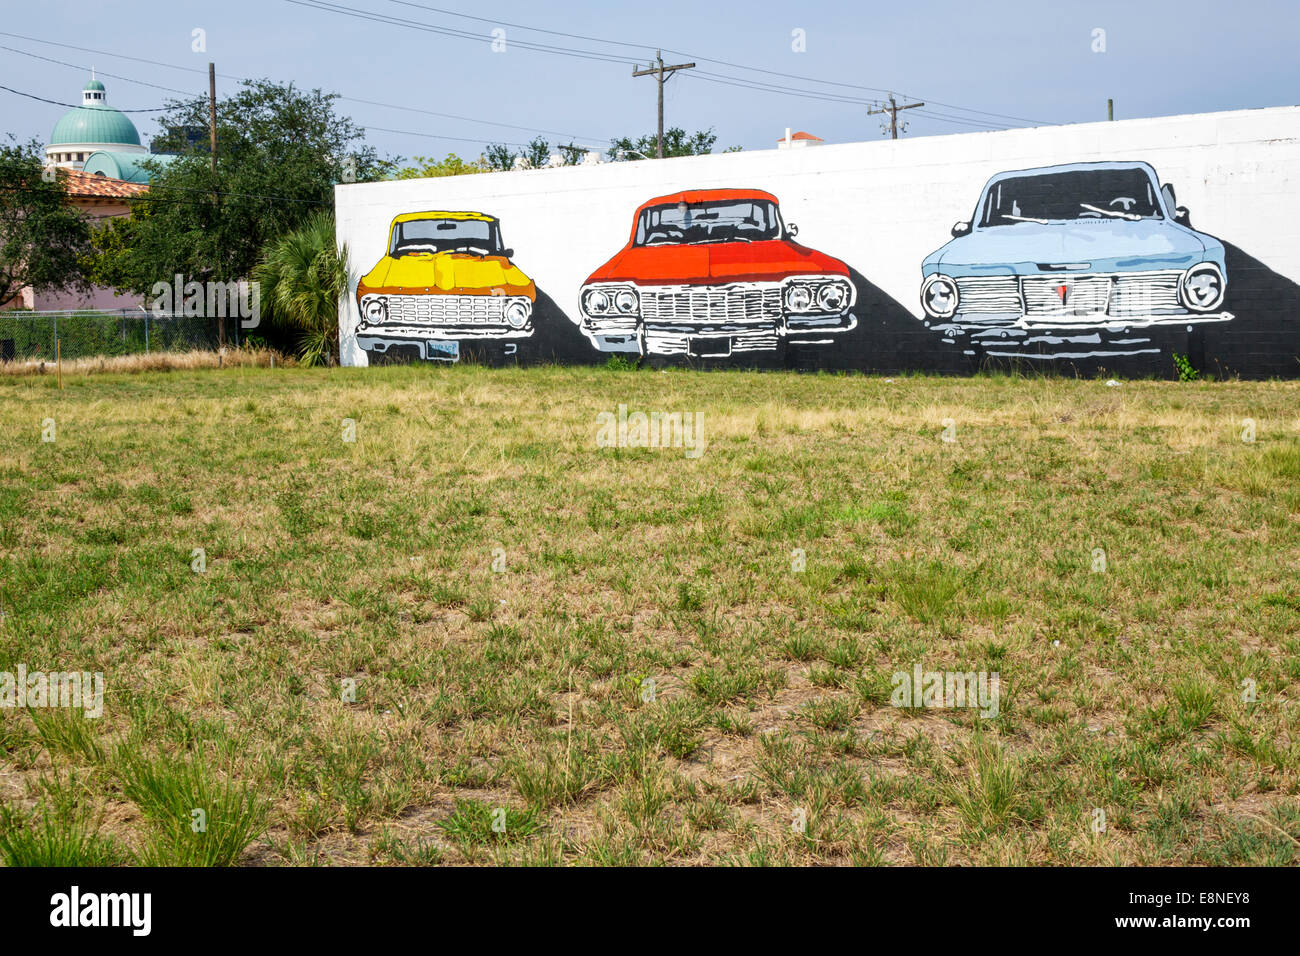 West Palm Beach Florida wall mural classic cars art Stock Photo ...